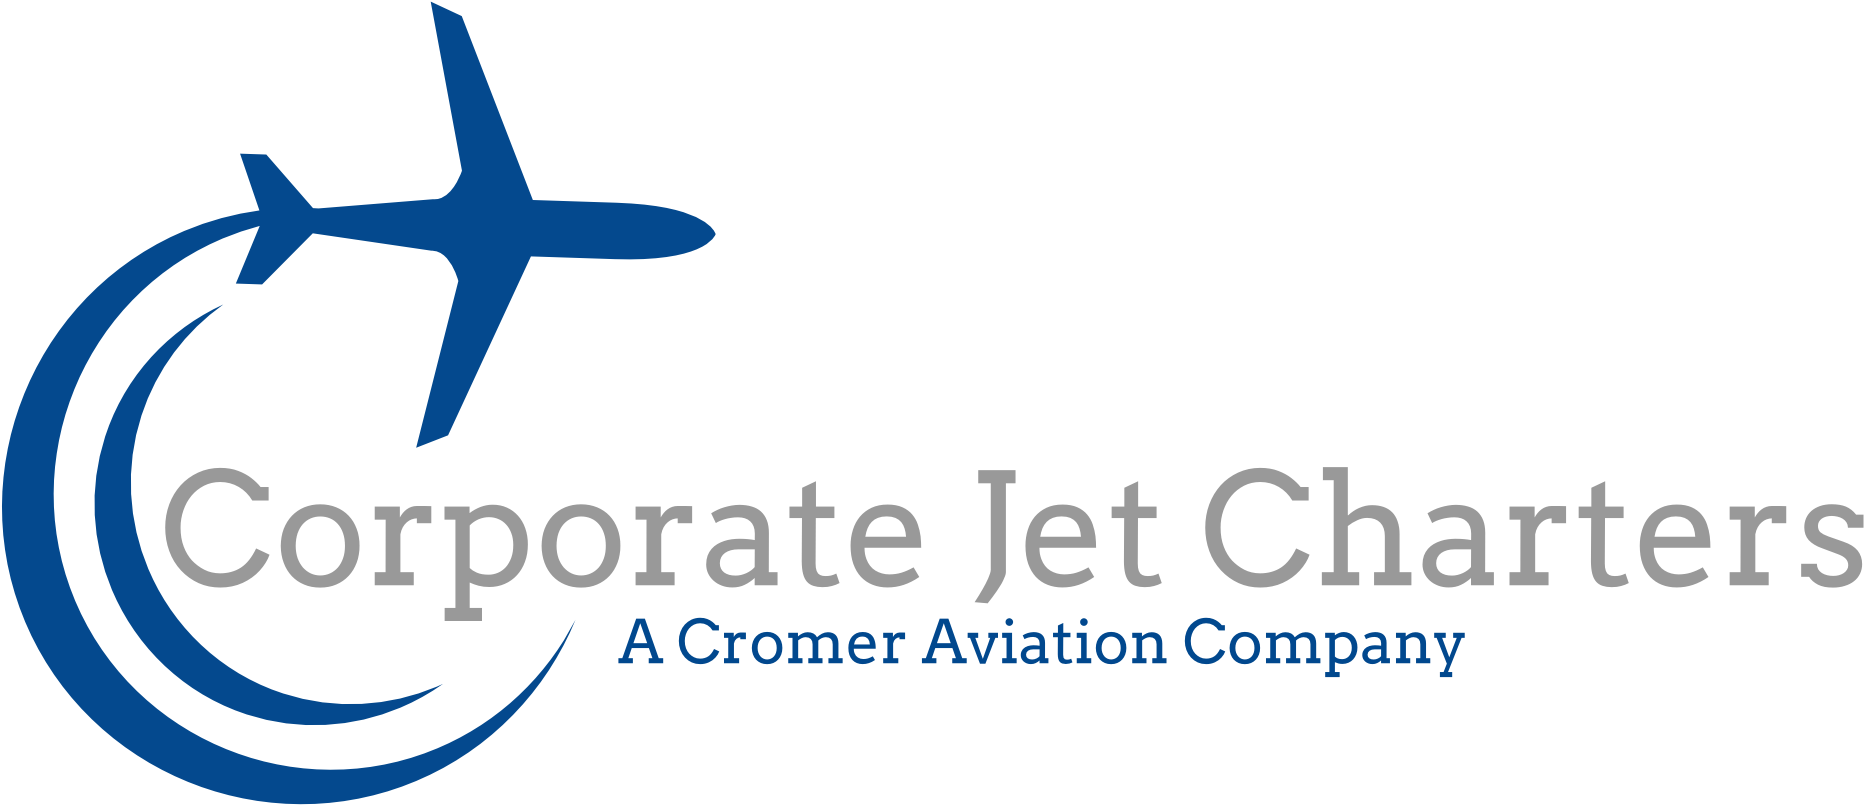 Transparent air transportation clipart - Aircraft Charters Management And Sales Corporate Inc